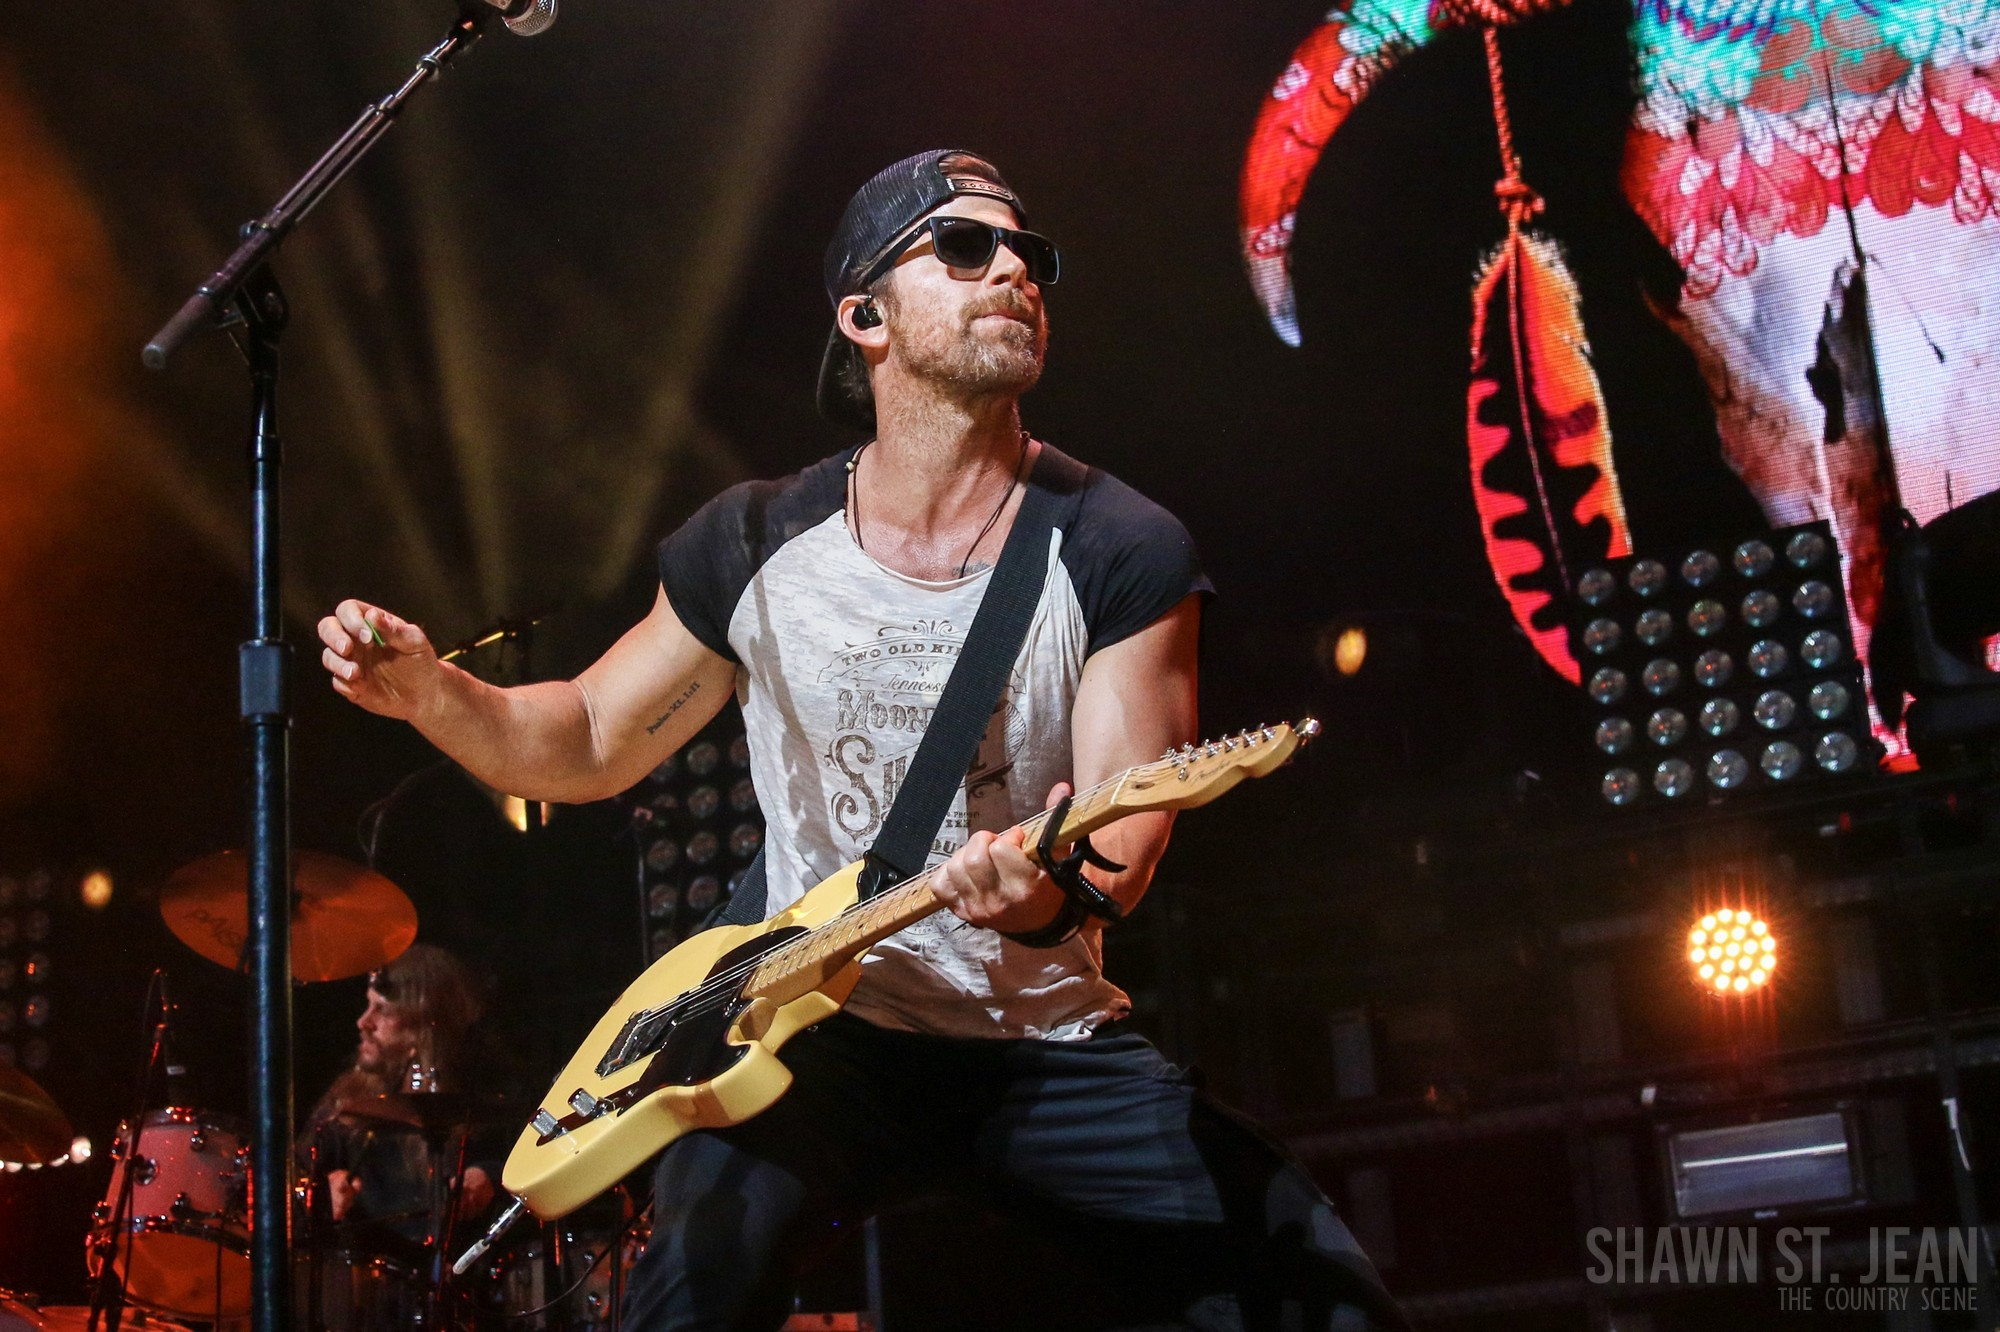 Kip Moore in Hartford CT on June 29, 2018. Photo by Shawn St. Jean.